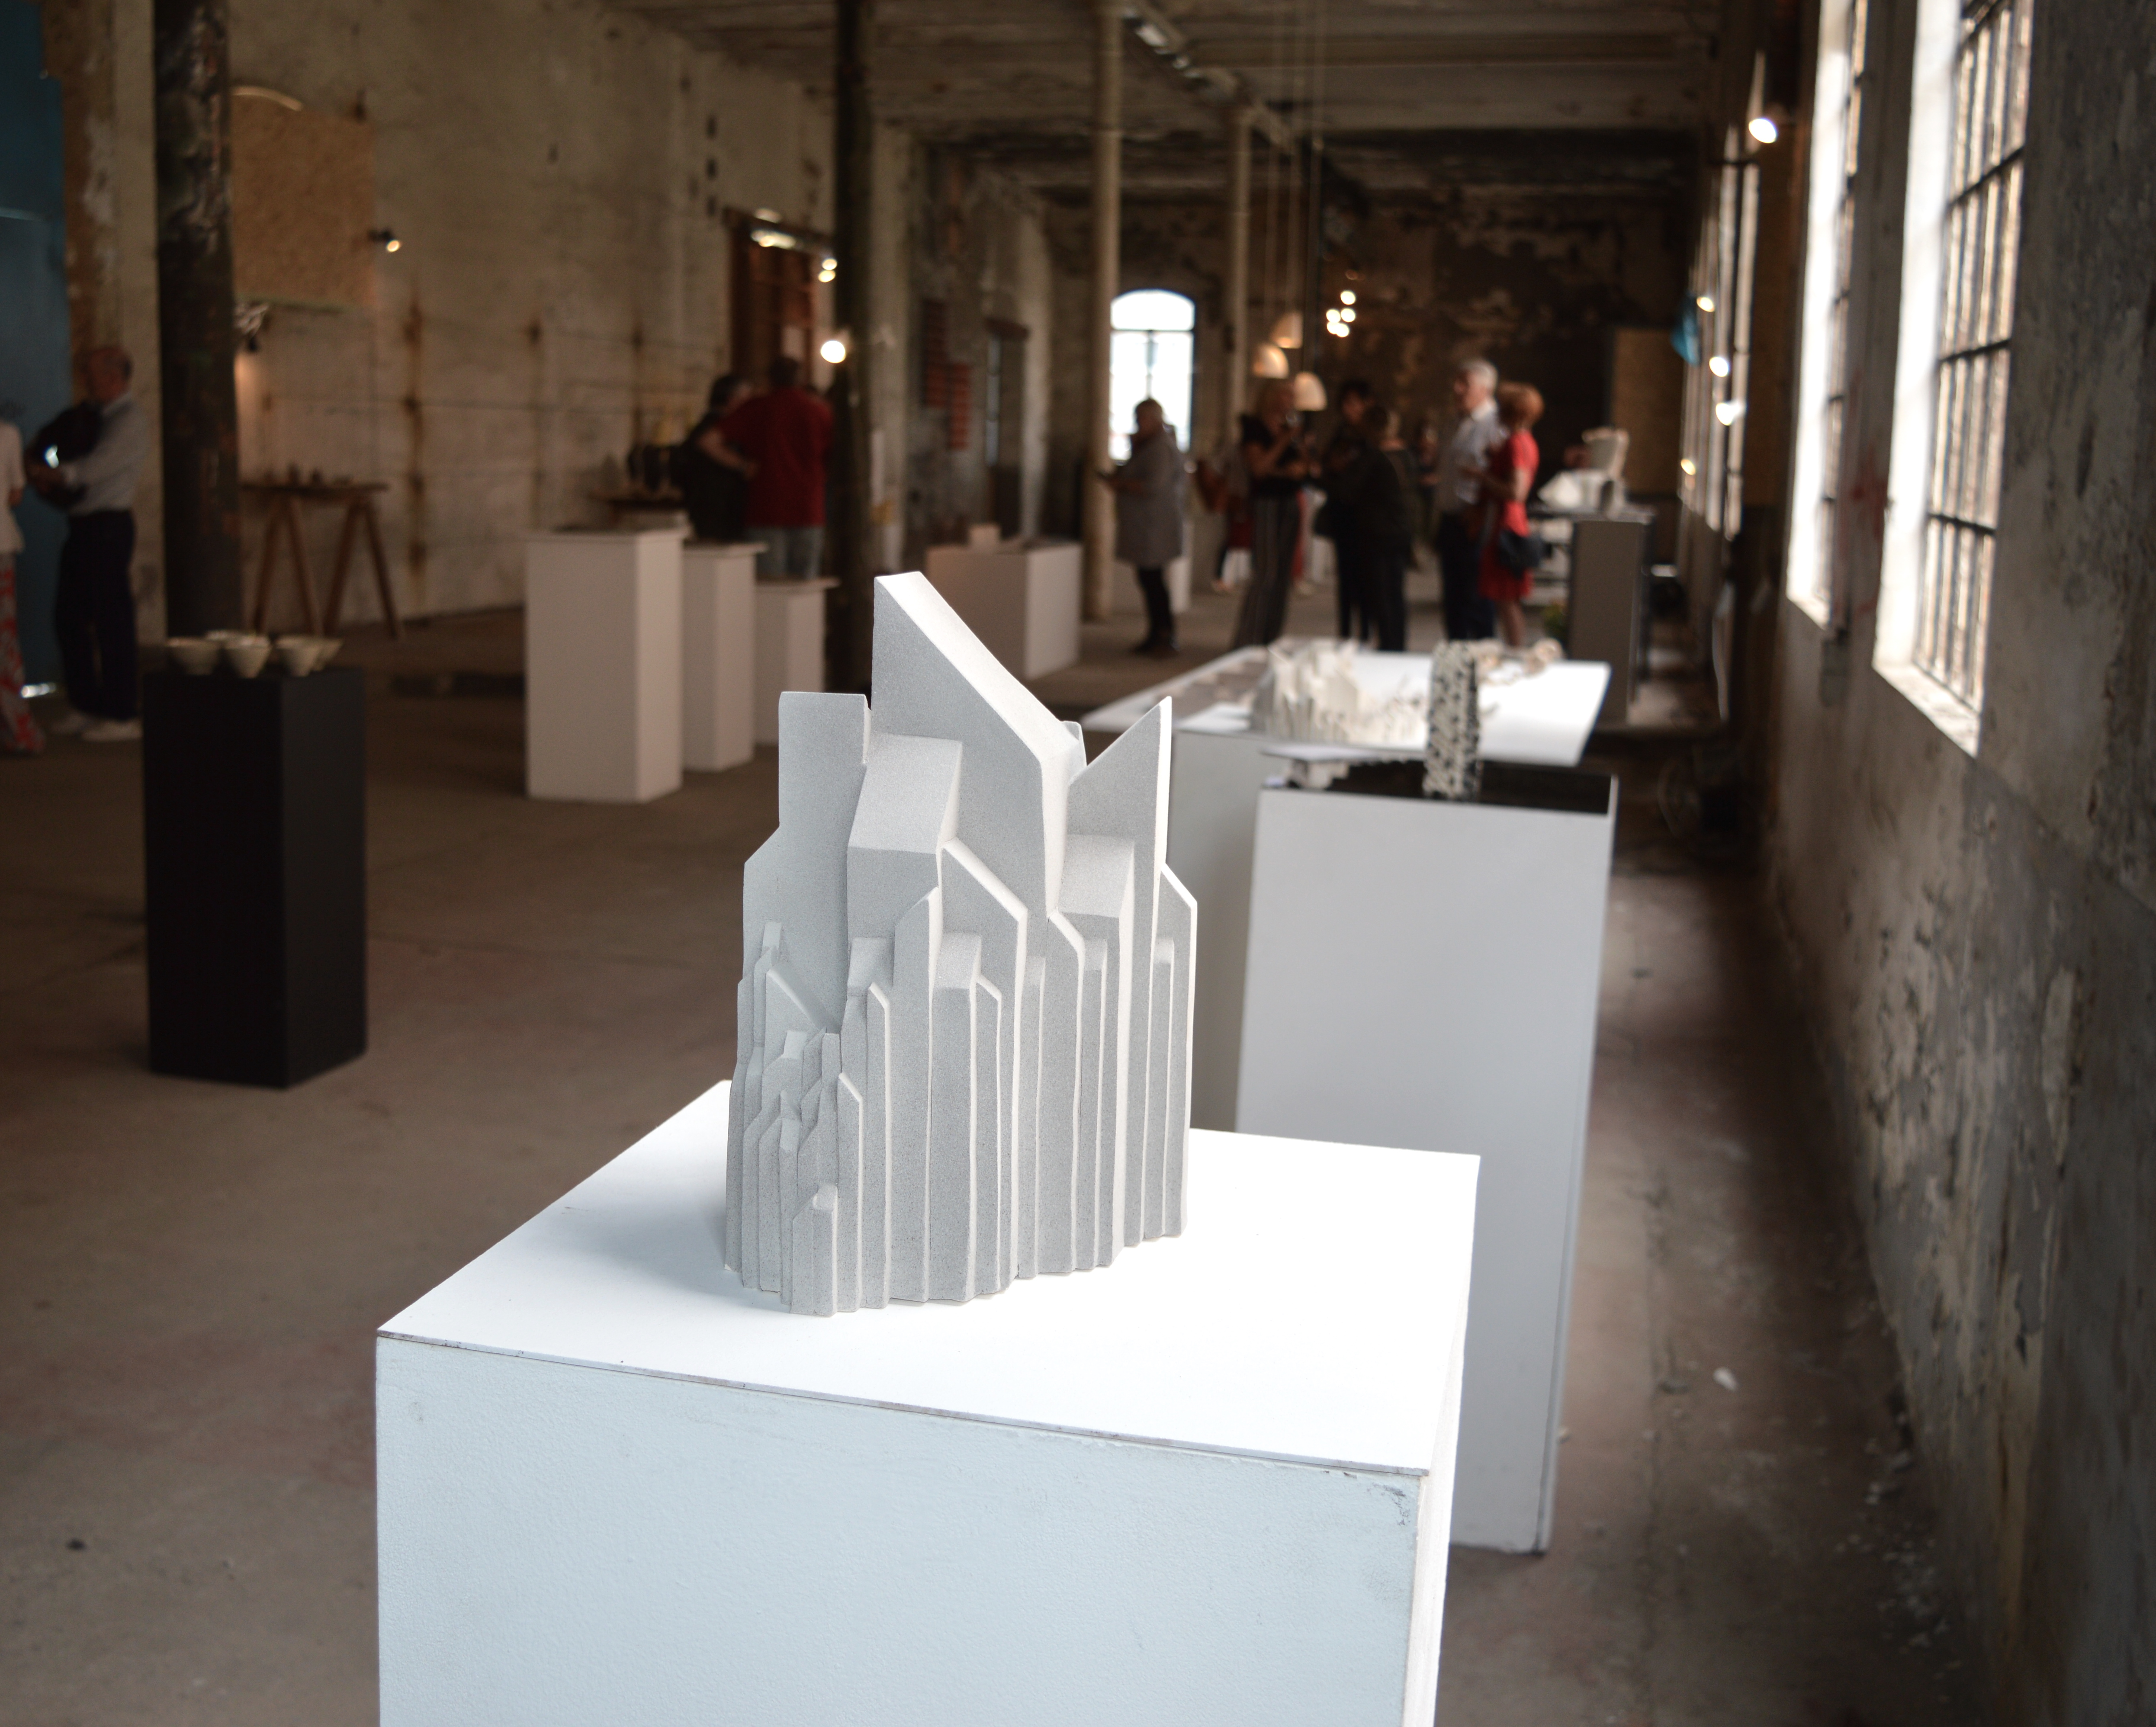 New York Ceramic sculpture by Femke De Roo